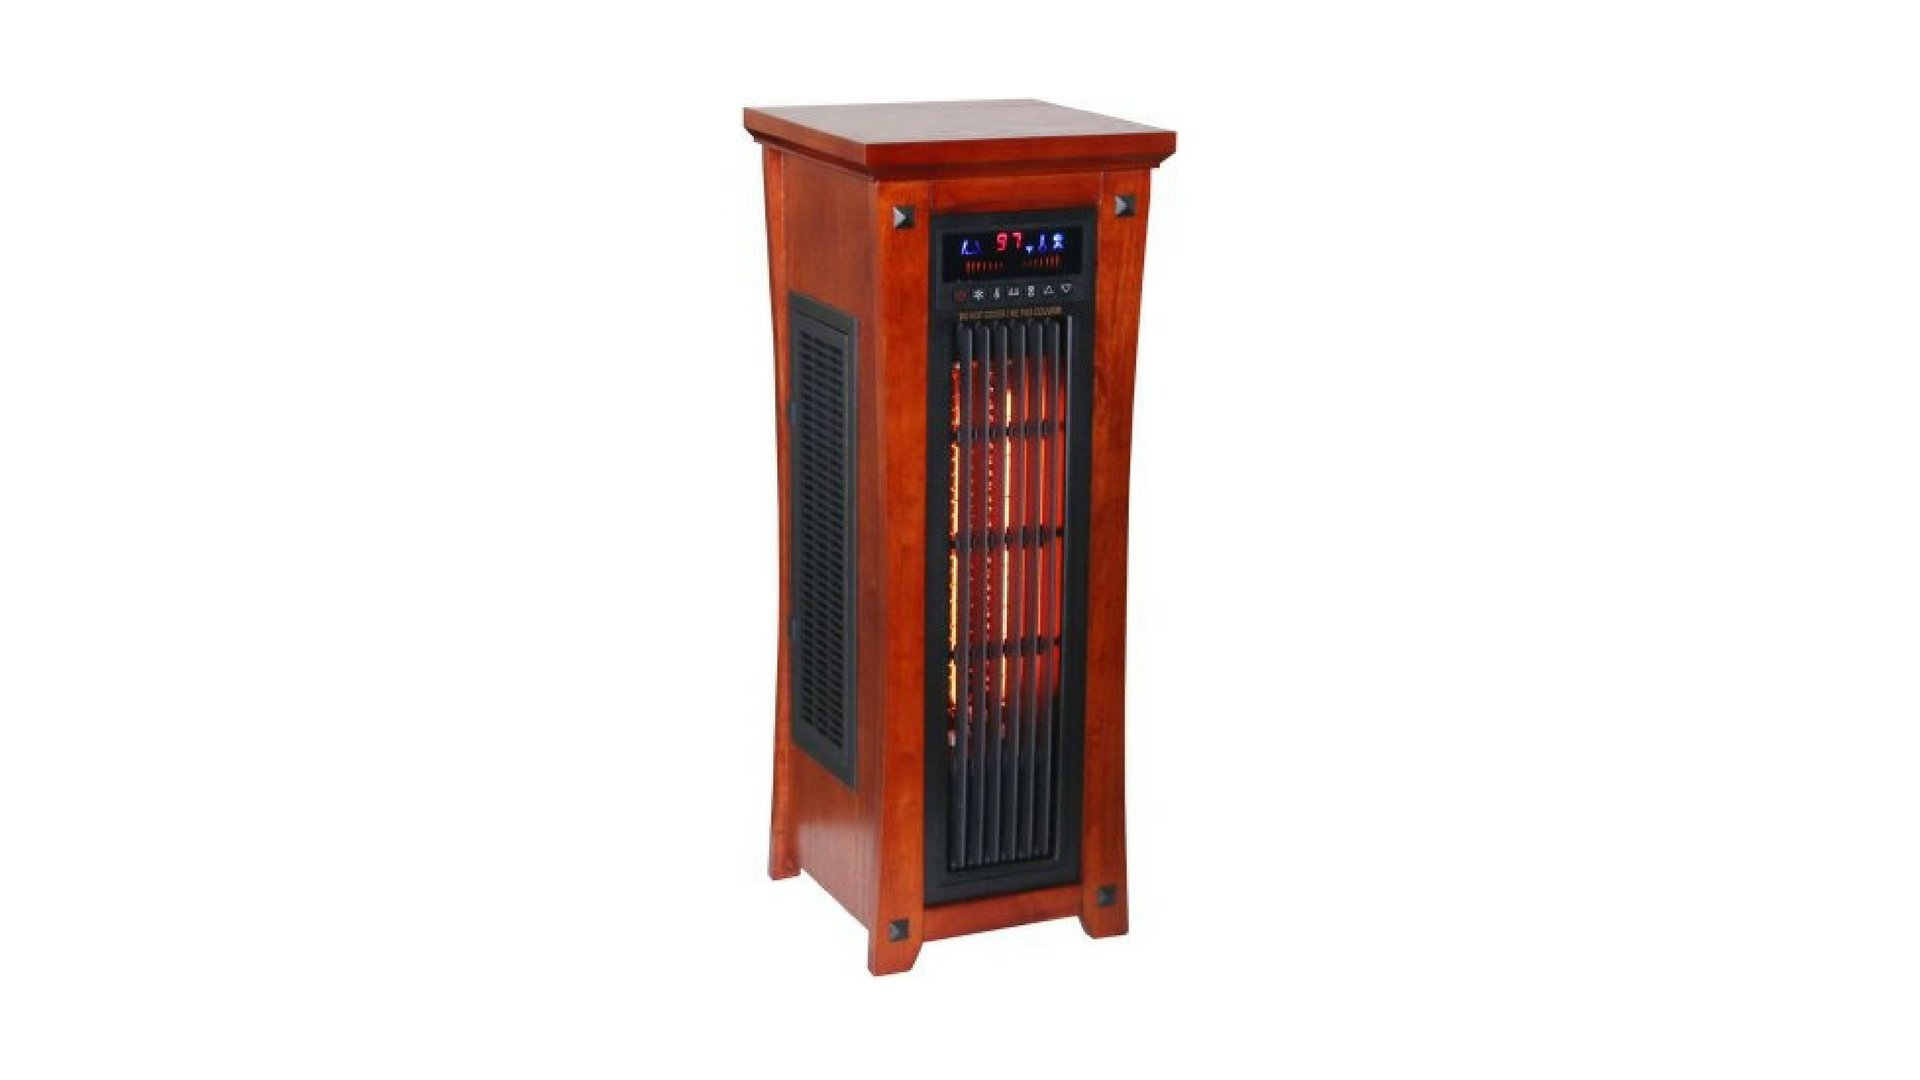 Full Function Remote Control Infrared Quartz Tower Heater with Oscillating Fan